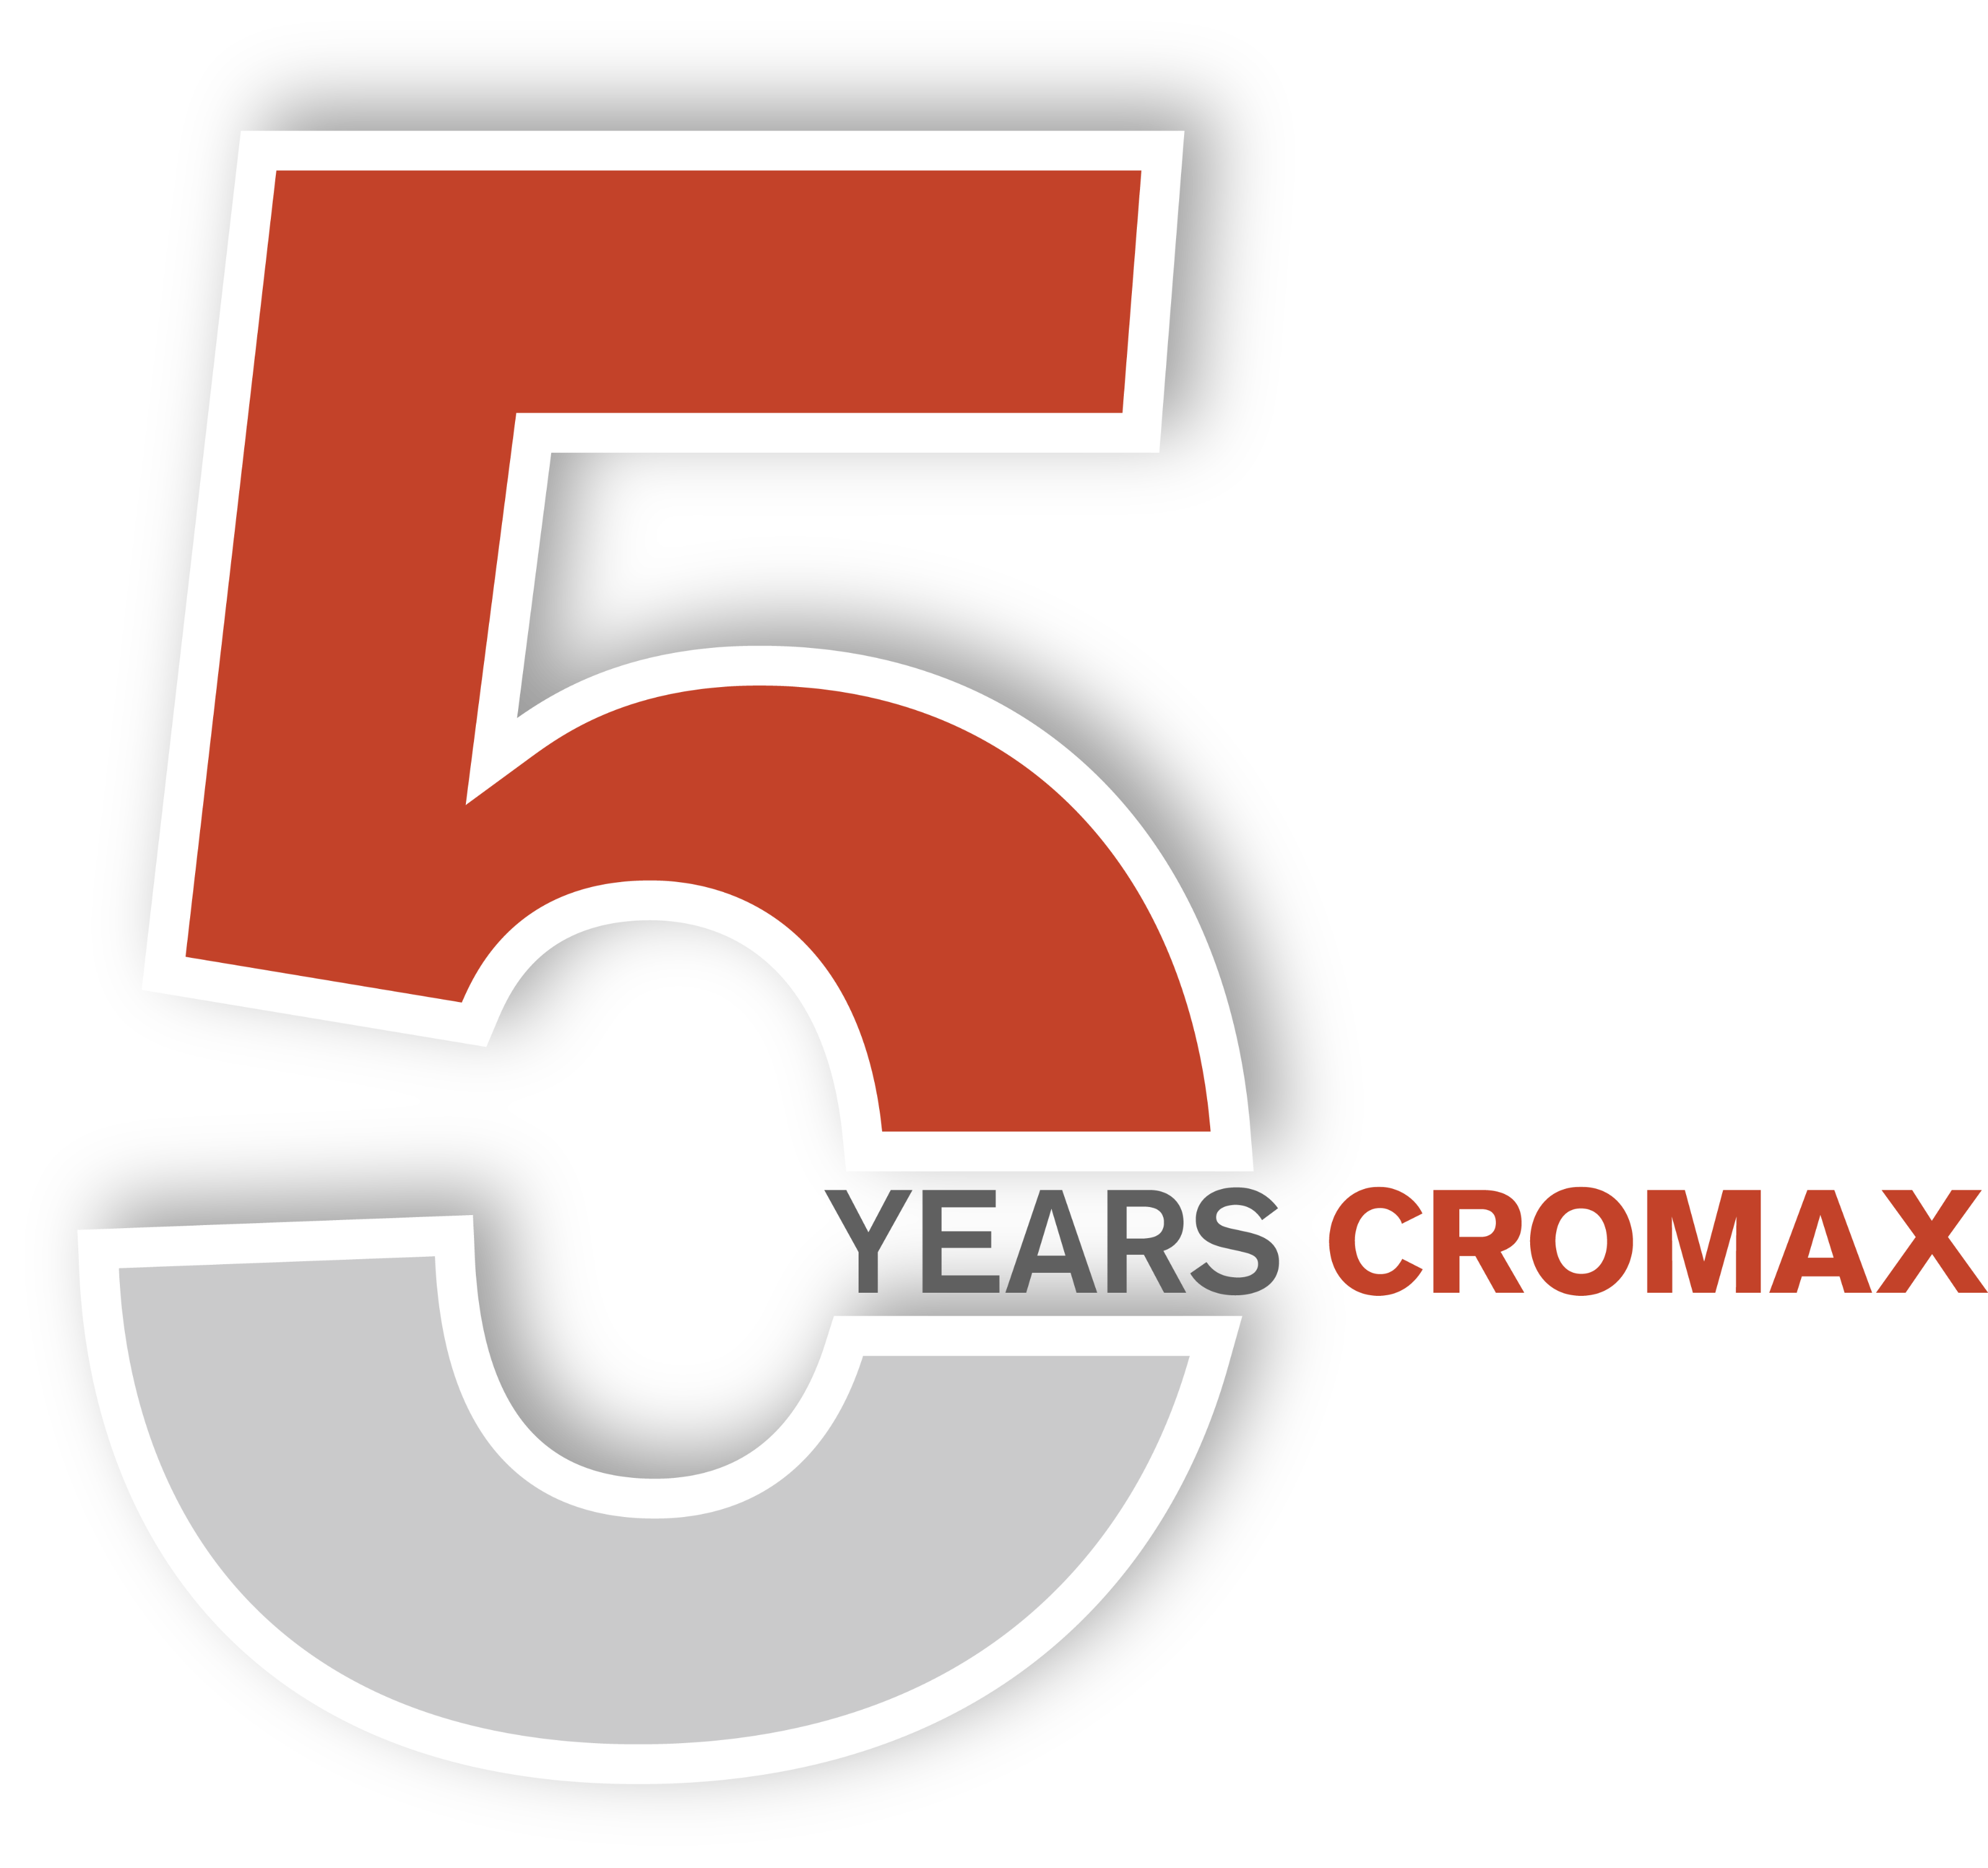 5 Years of Innovation with Cromax